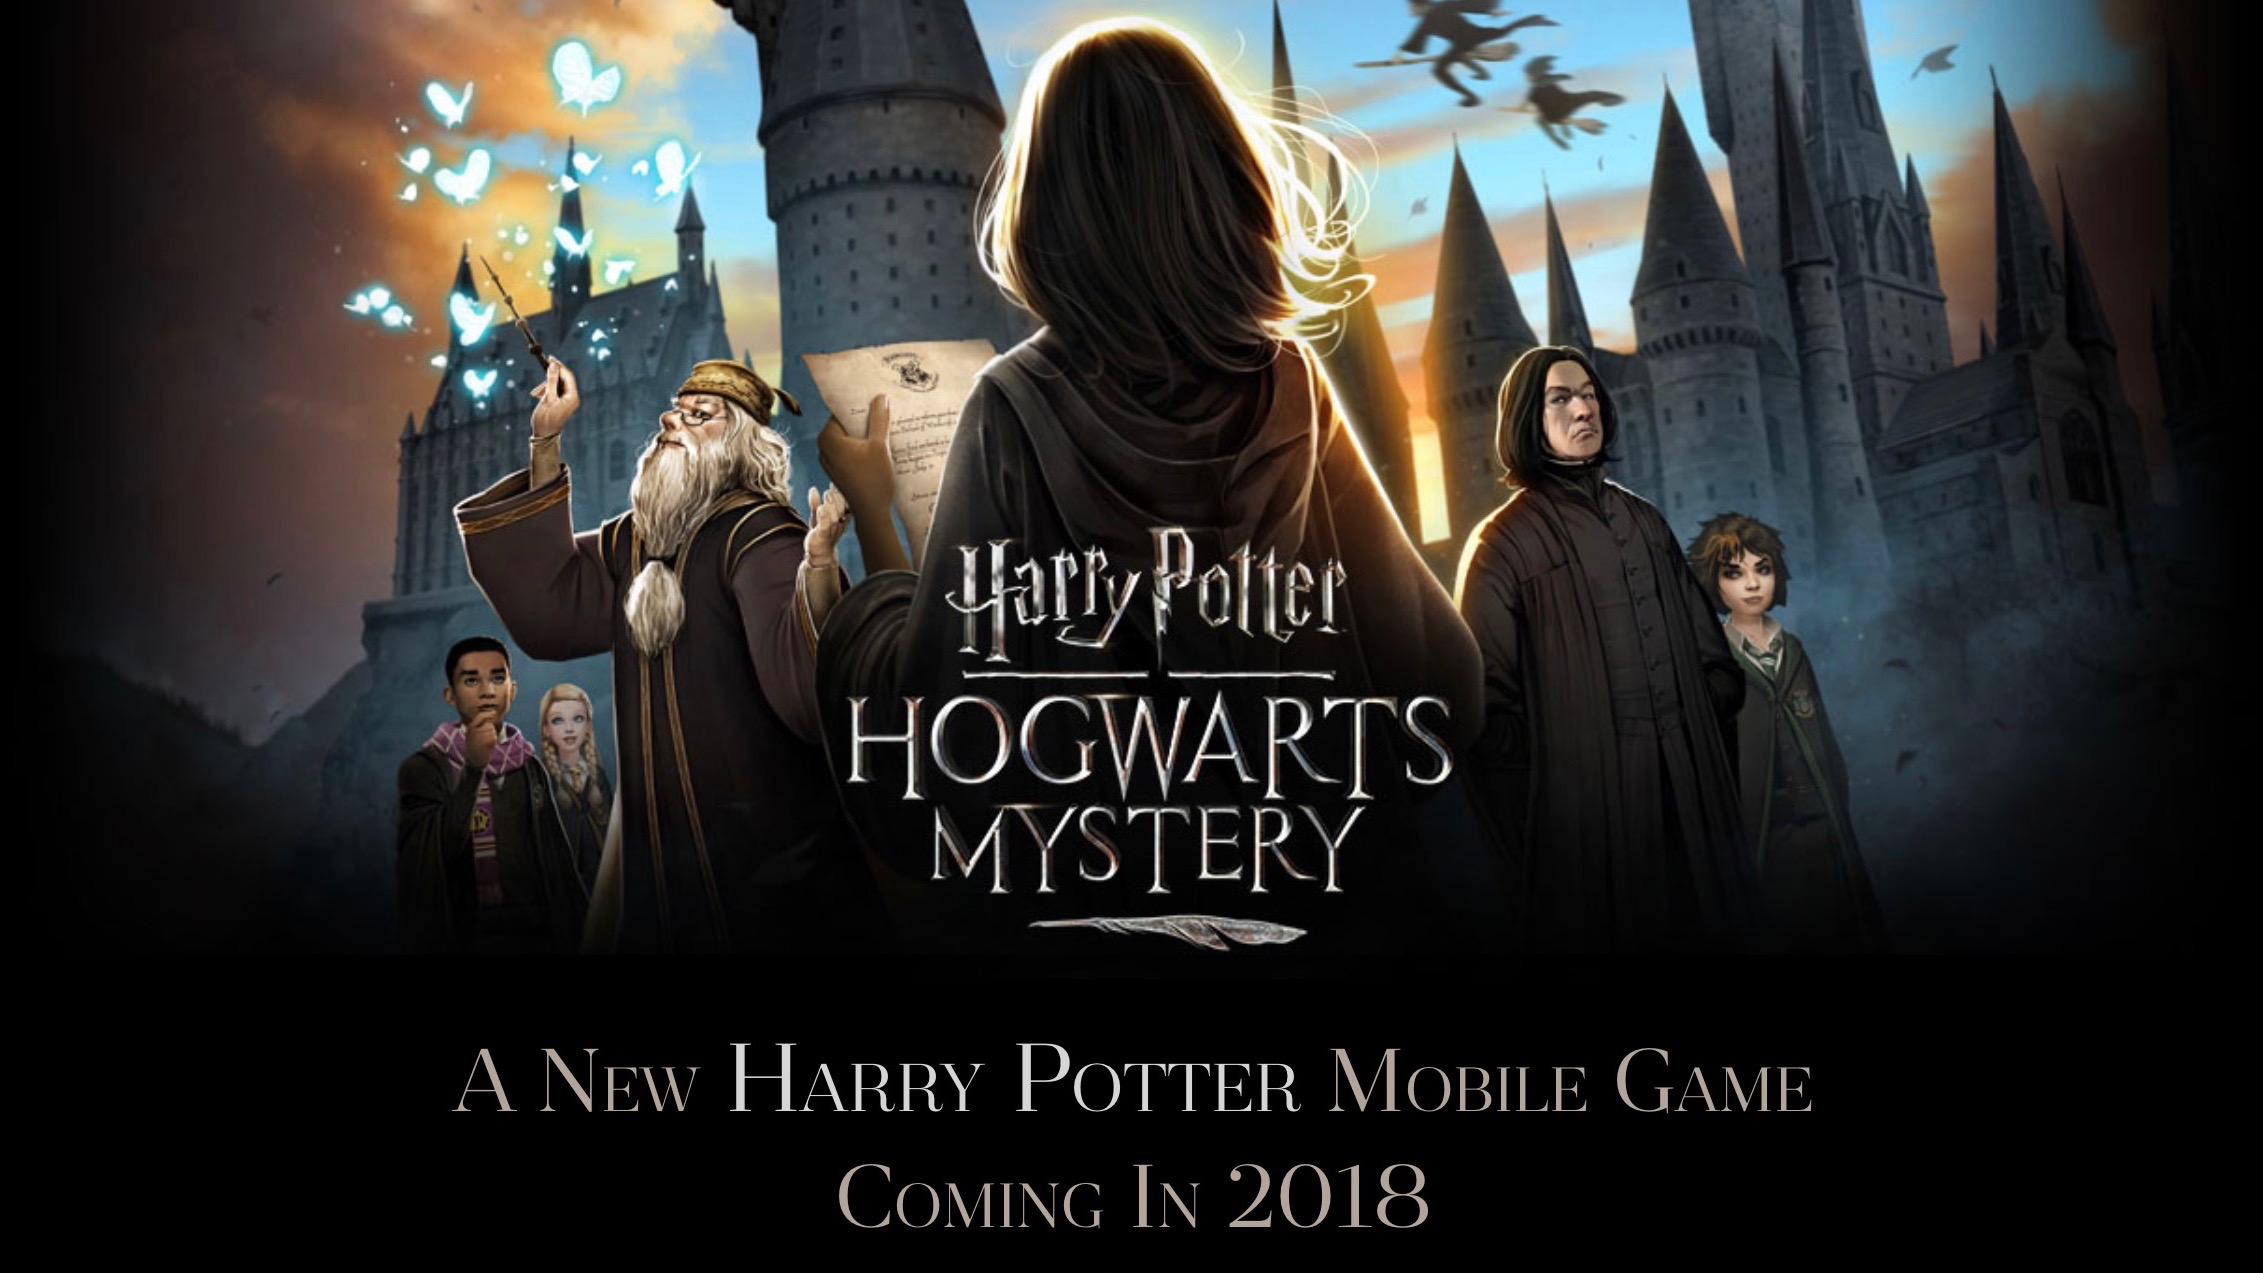 'Harry Potter: Hogwarts Mystery' hitting iOS this month, featuring voiceovers by original cast